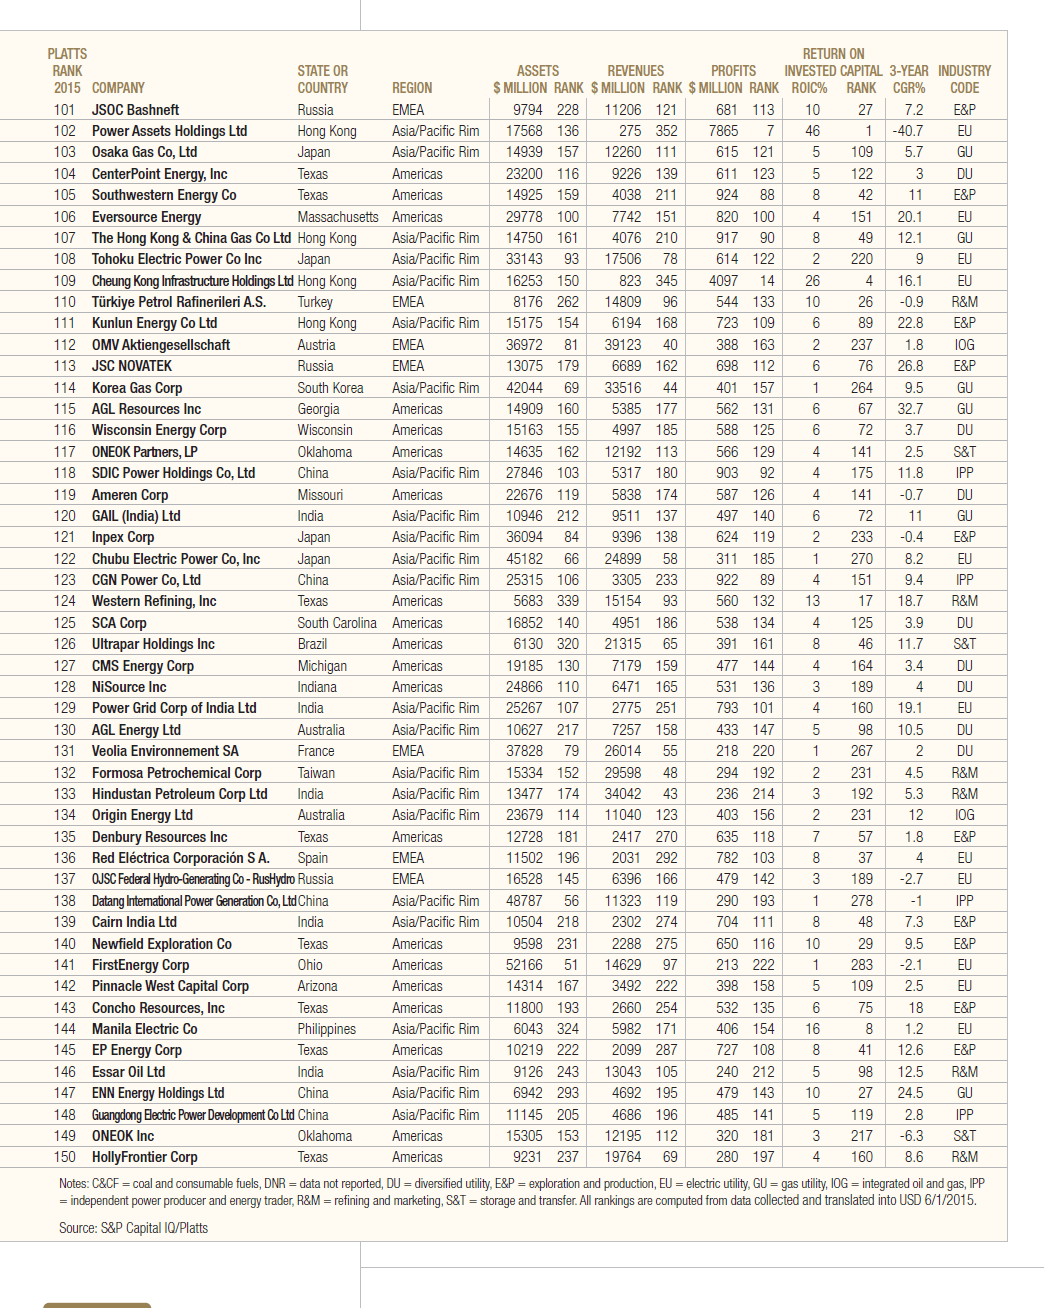 Platts Top 250 Energy Companies for 2015-Page 3